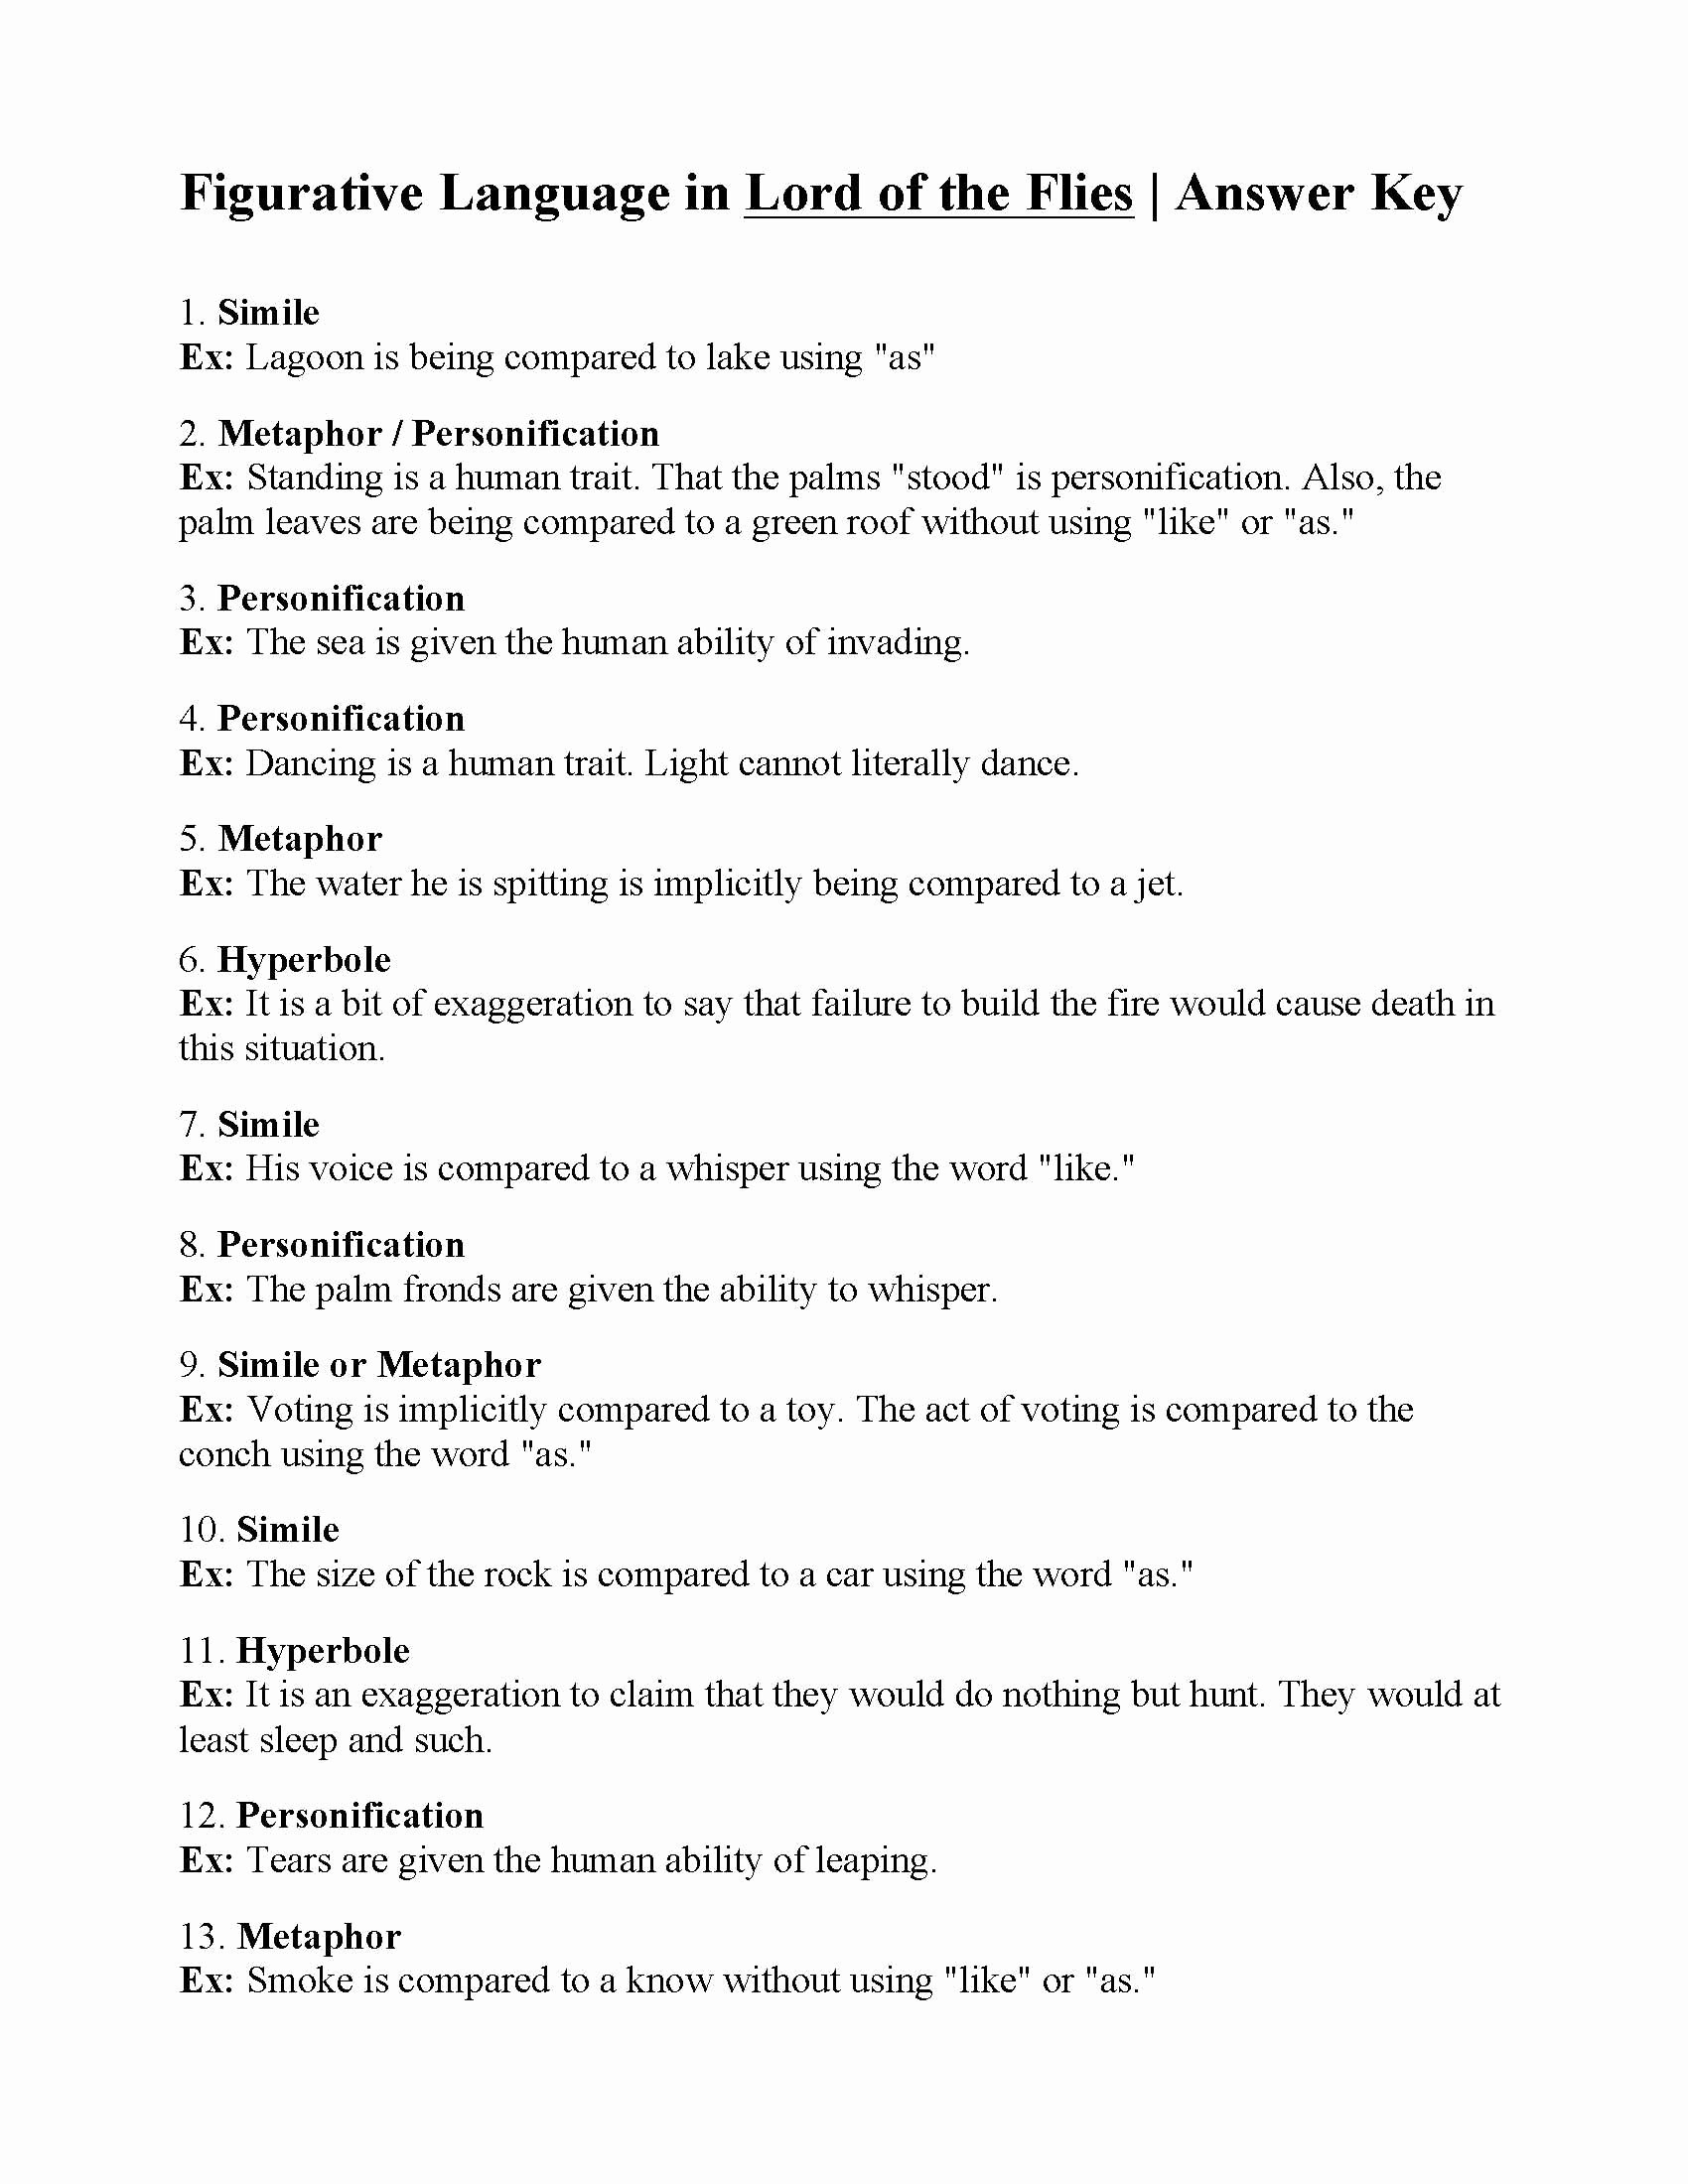 Figurative Language Worksheets High School Fresh Figurative Language Worksheet Lord Of the Flies